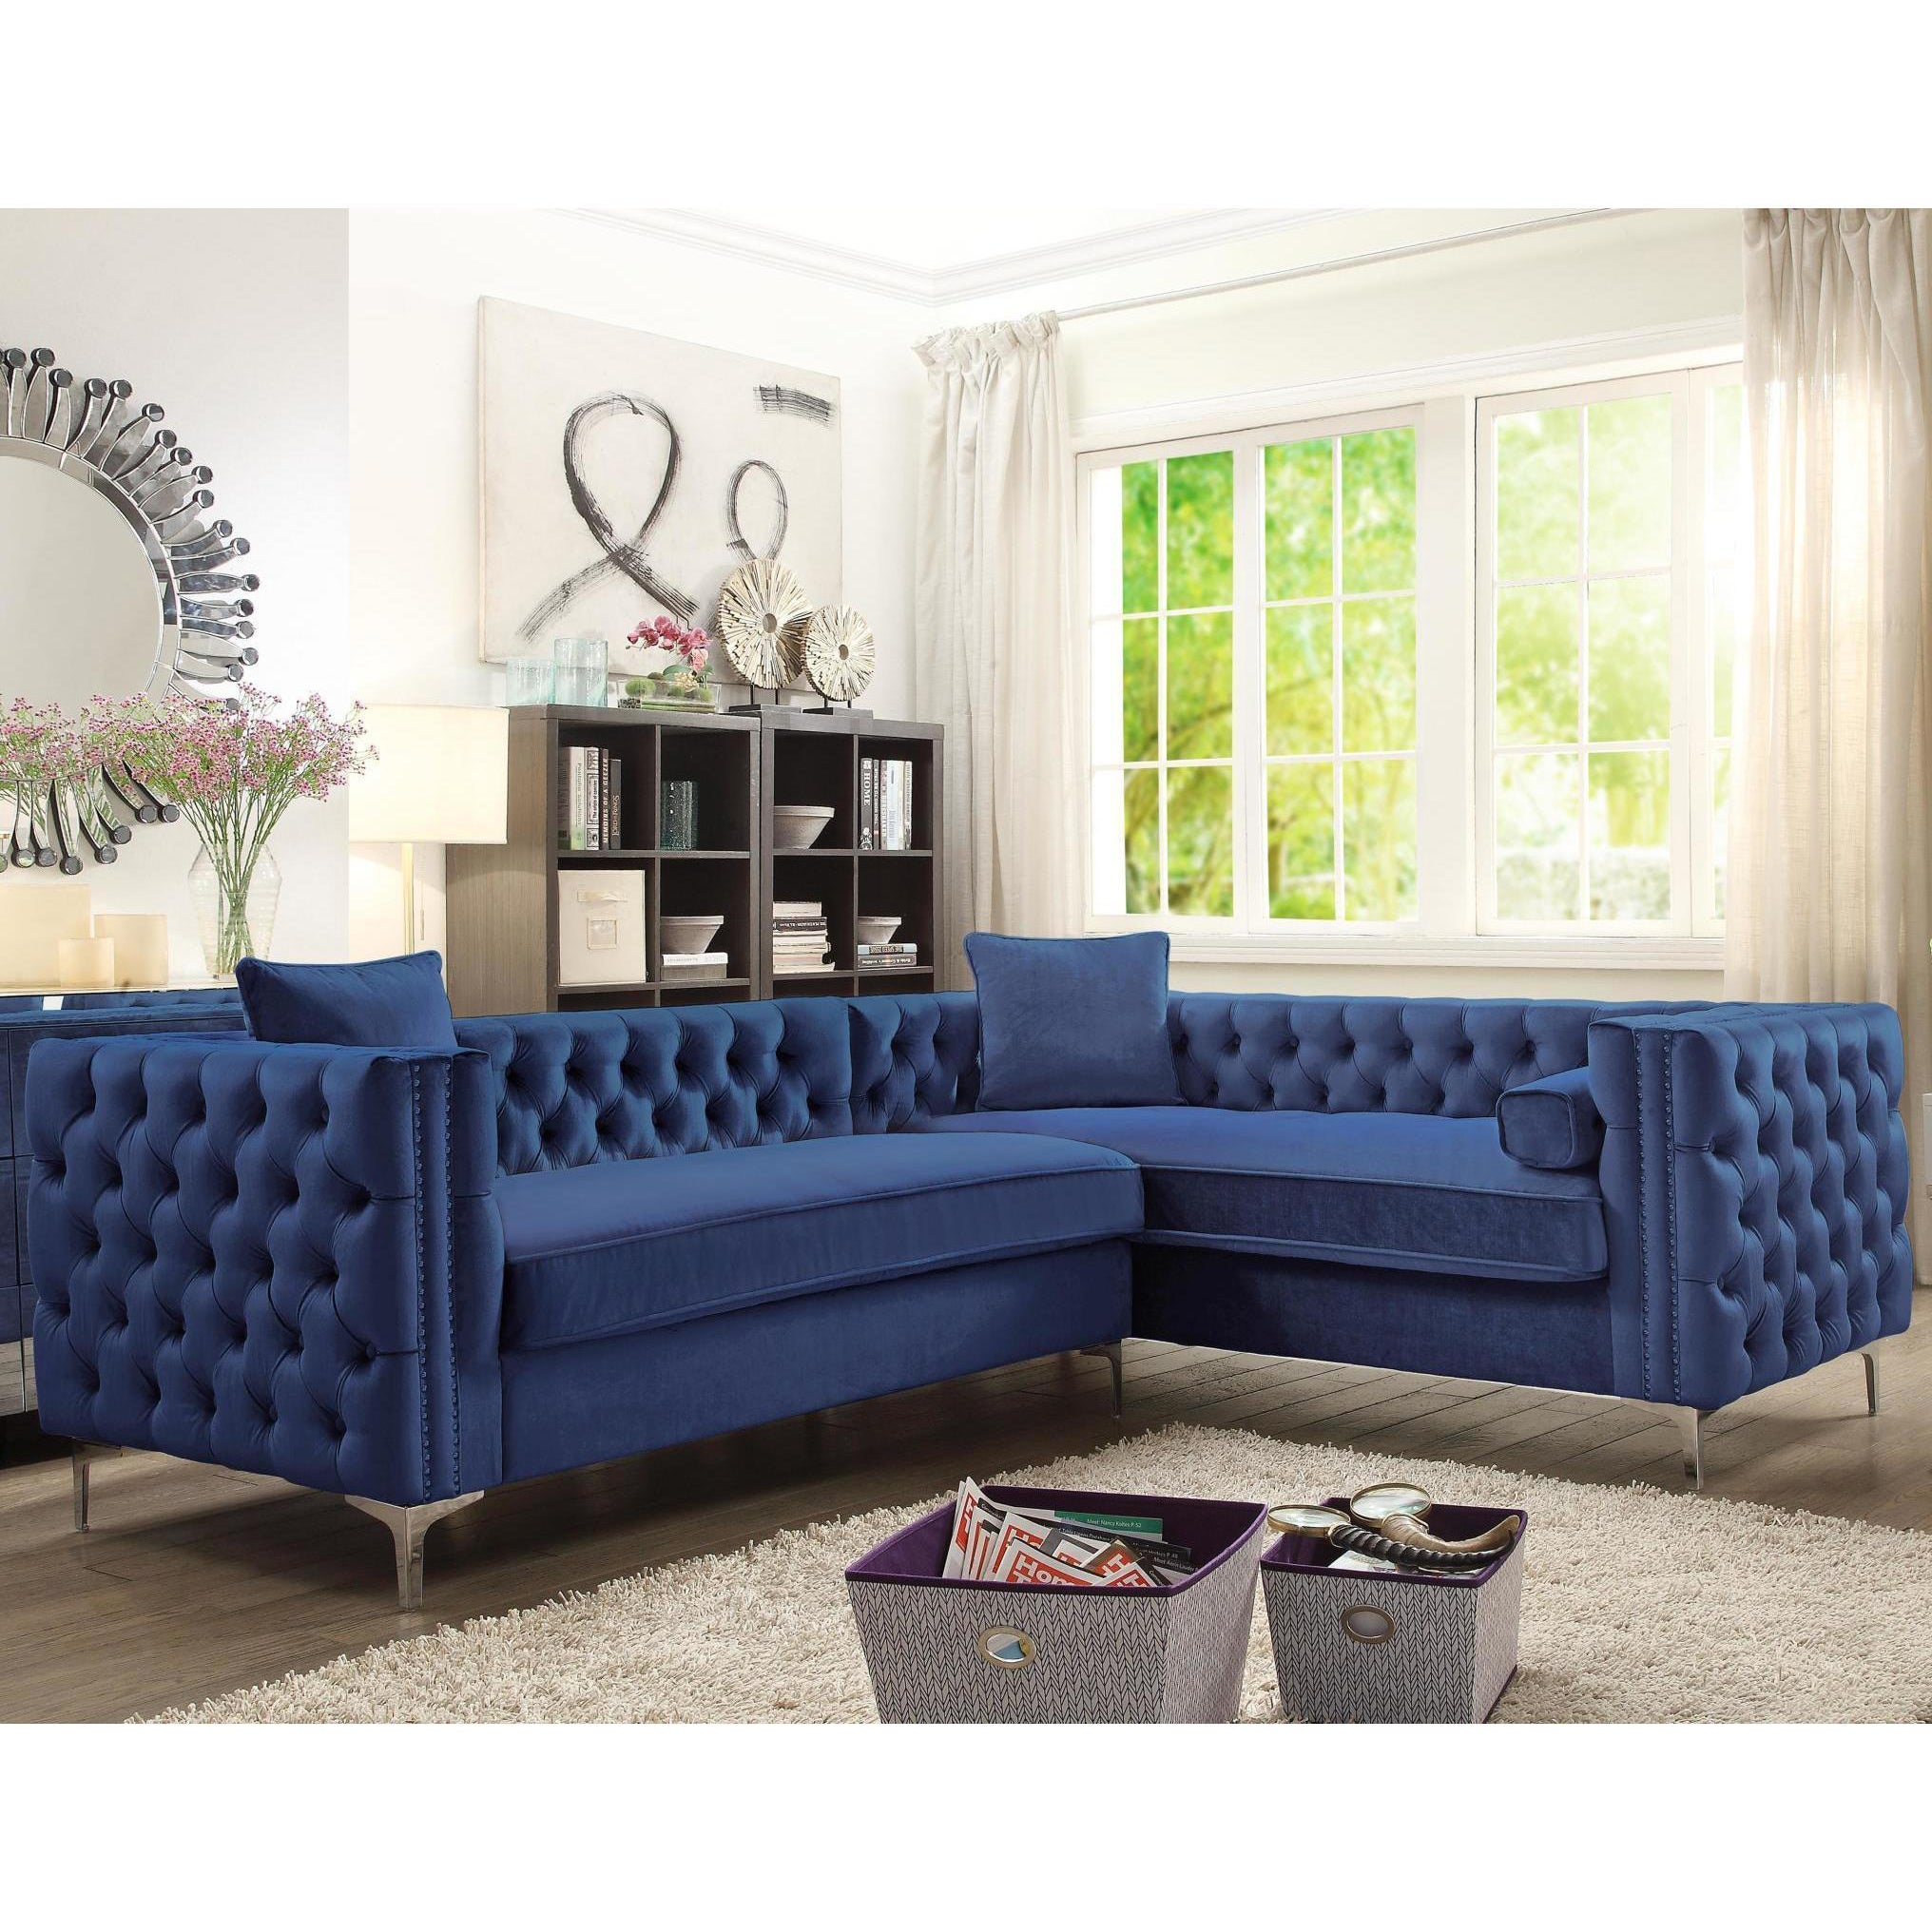 Shop Chic Home Susan Blue Velvet Tufted Modern Sofa with Silver - On ...